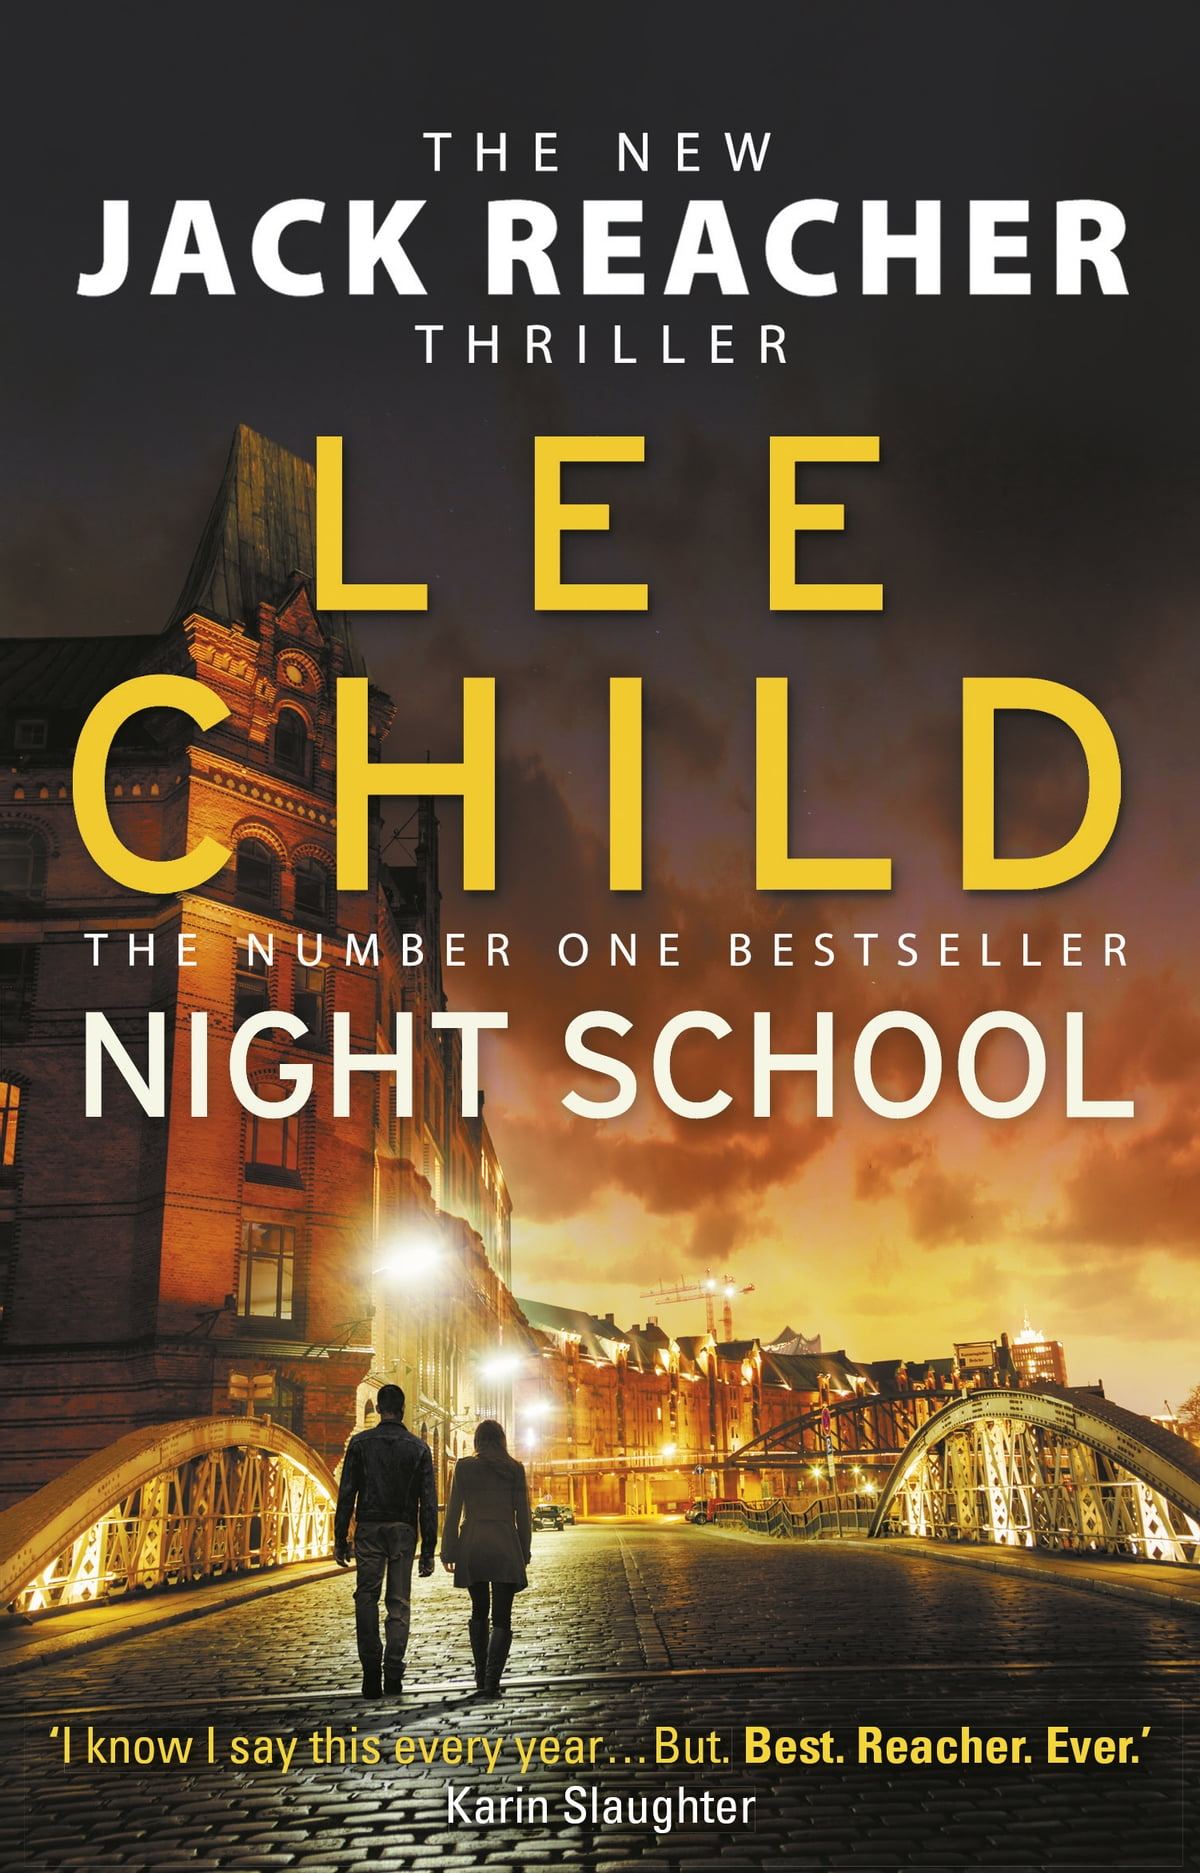 The wrong side of goodbye ebook by michael connelly night school jack reacher 21 ebook by lee child fandeluxe Document